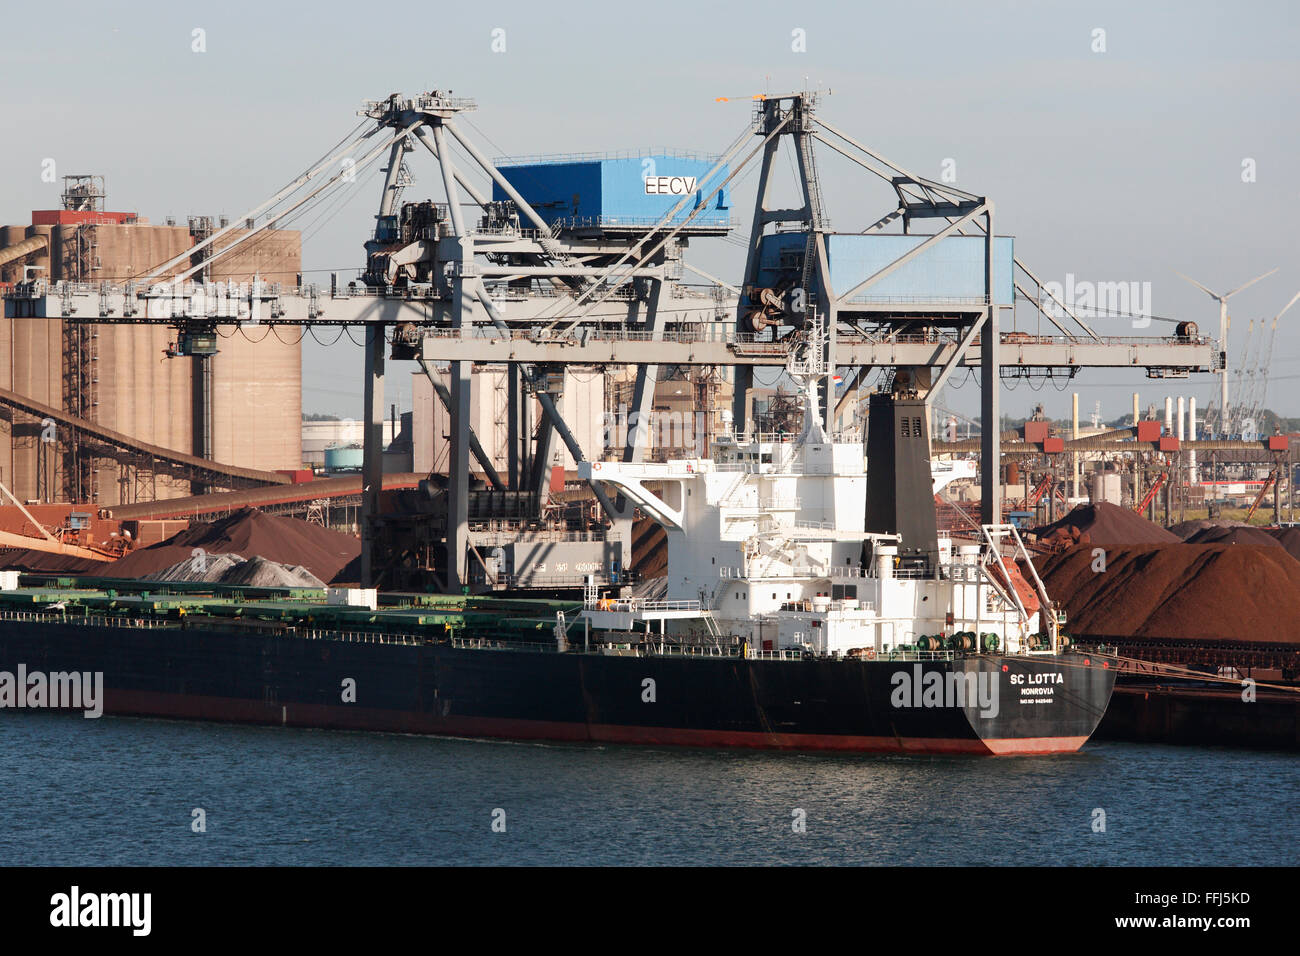 freighter SC Lotta Monrovia loading crude ore in the industrial harbour at Rotterdam, Netherlands - Stock Image